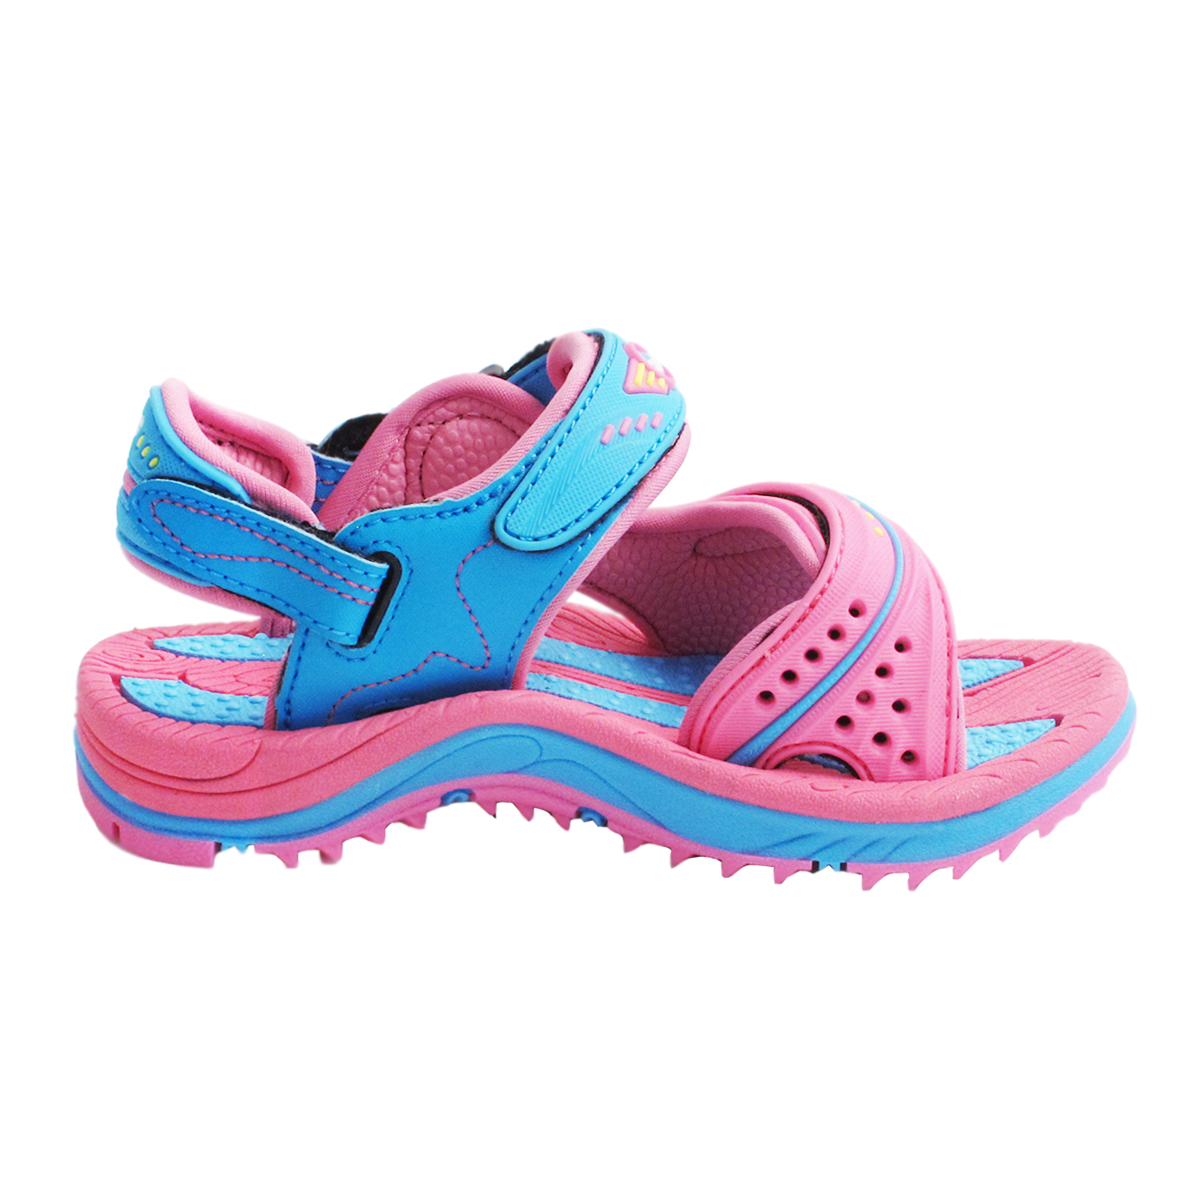 Best Arch Support Shoes For Toddlers